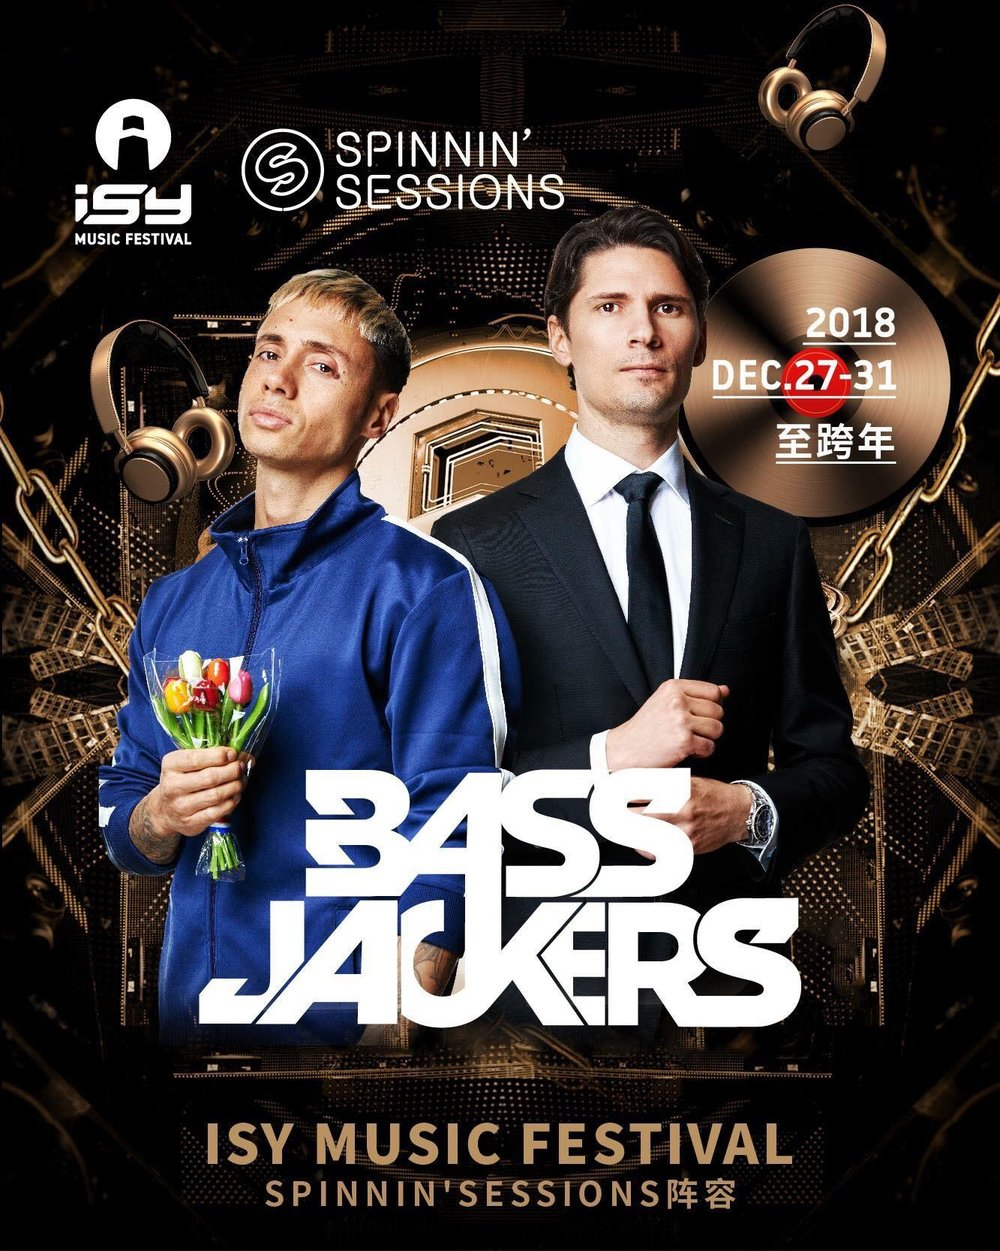 Bass Jackers - is a Dutch electronic music production and DJ duo consisting of Marlon Flohr & Ralph van Hilst. They are best known for their 2013 the single,